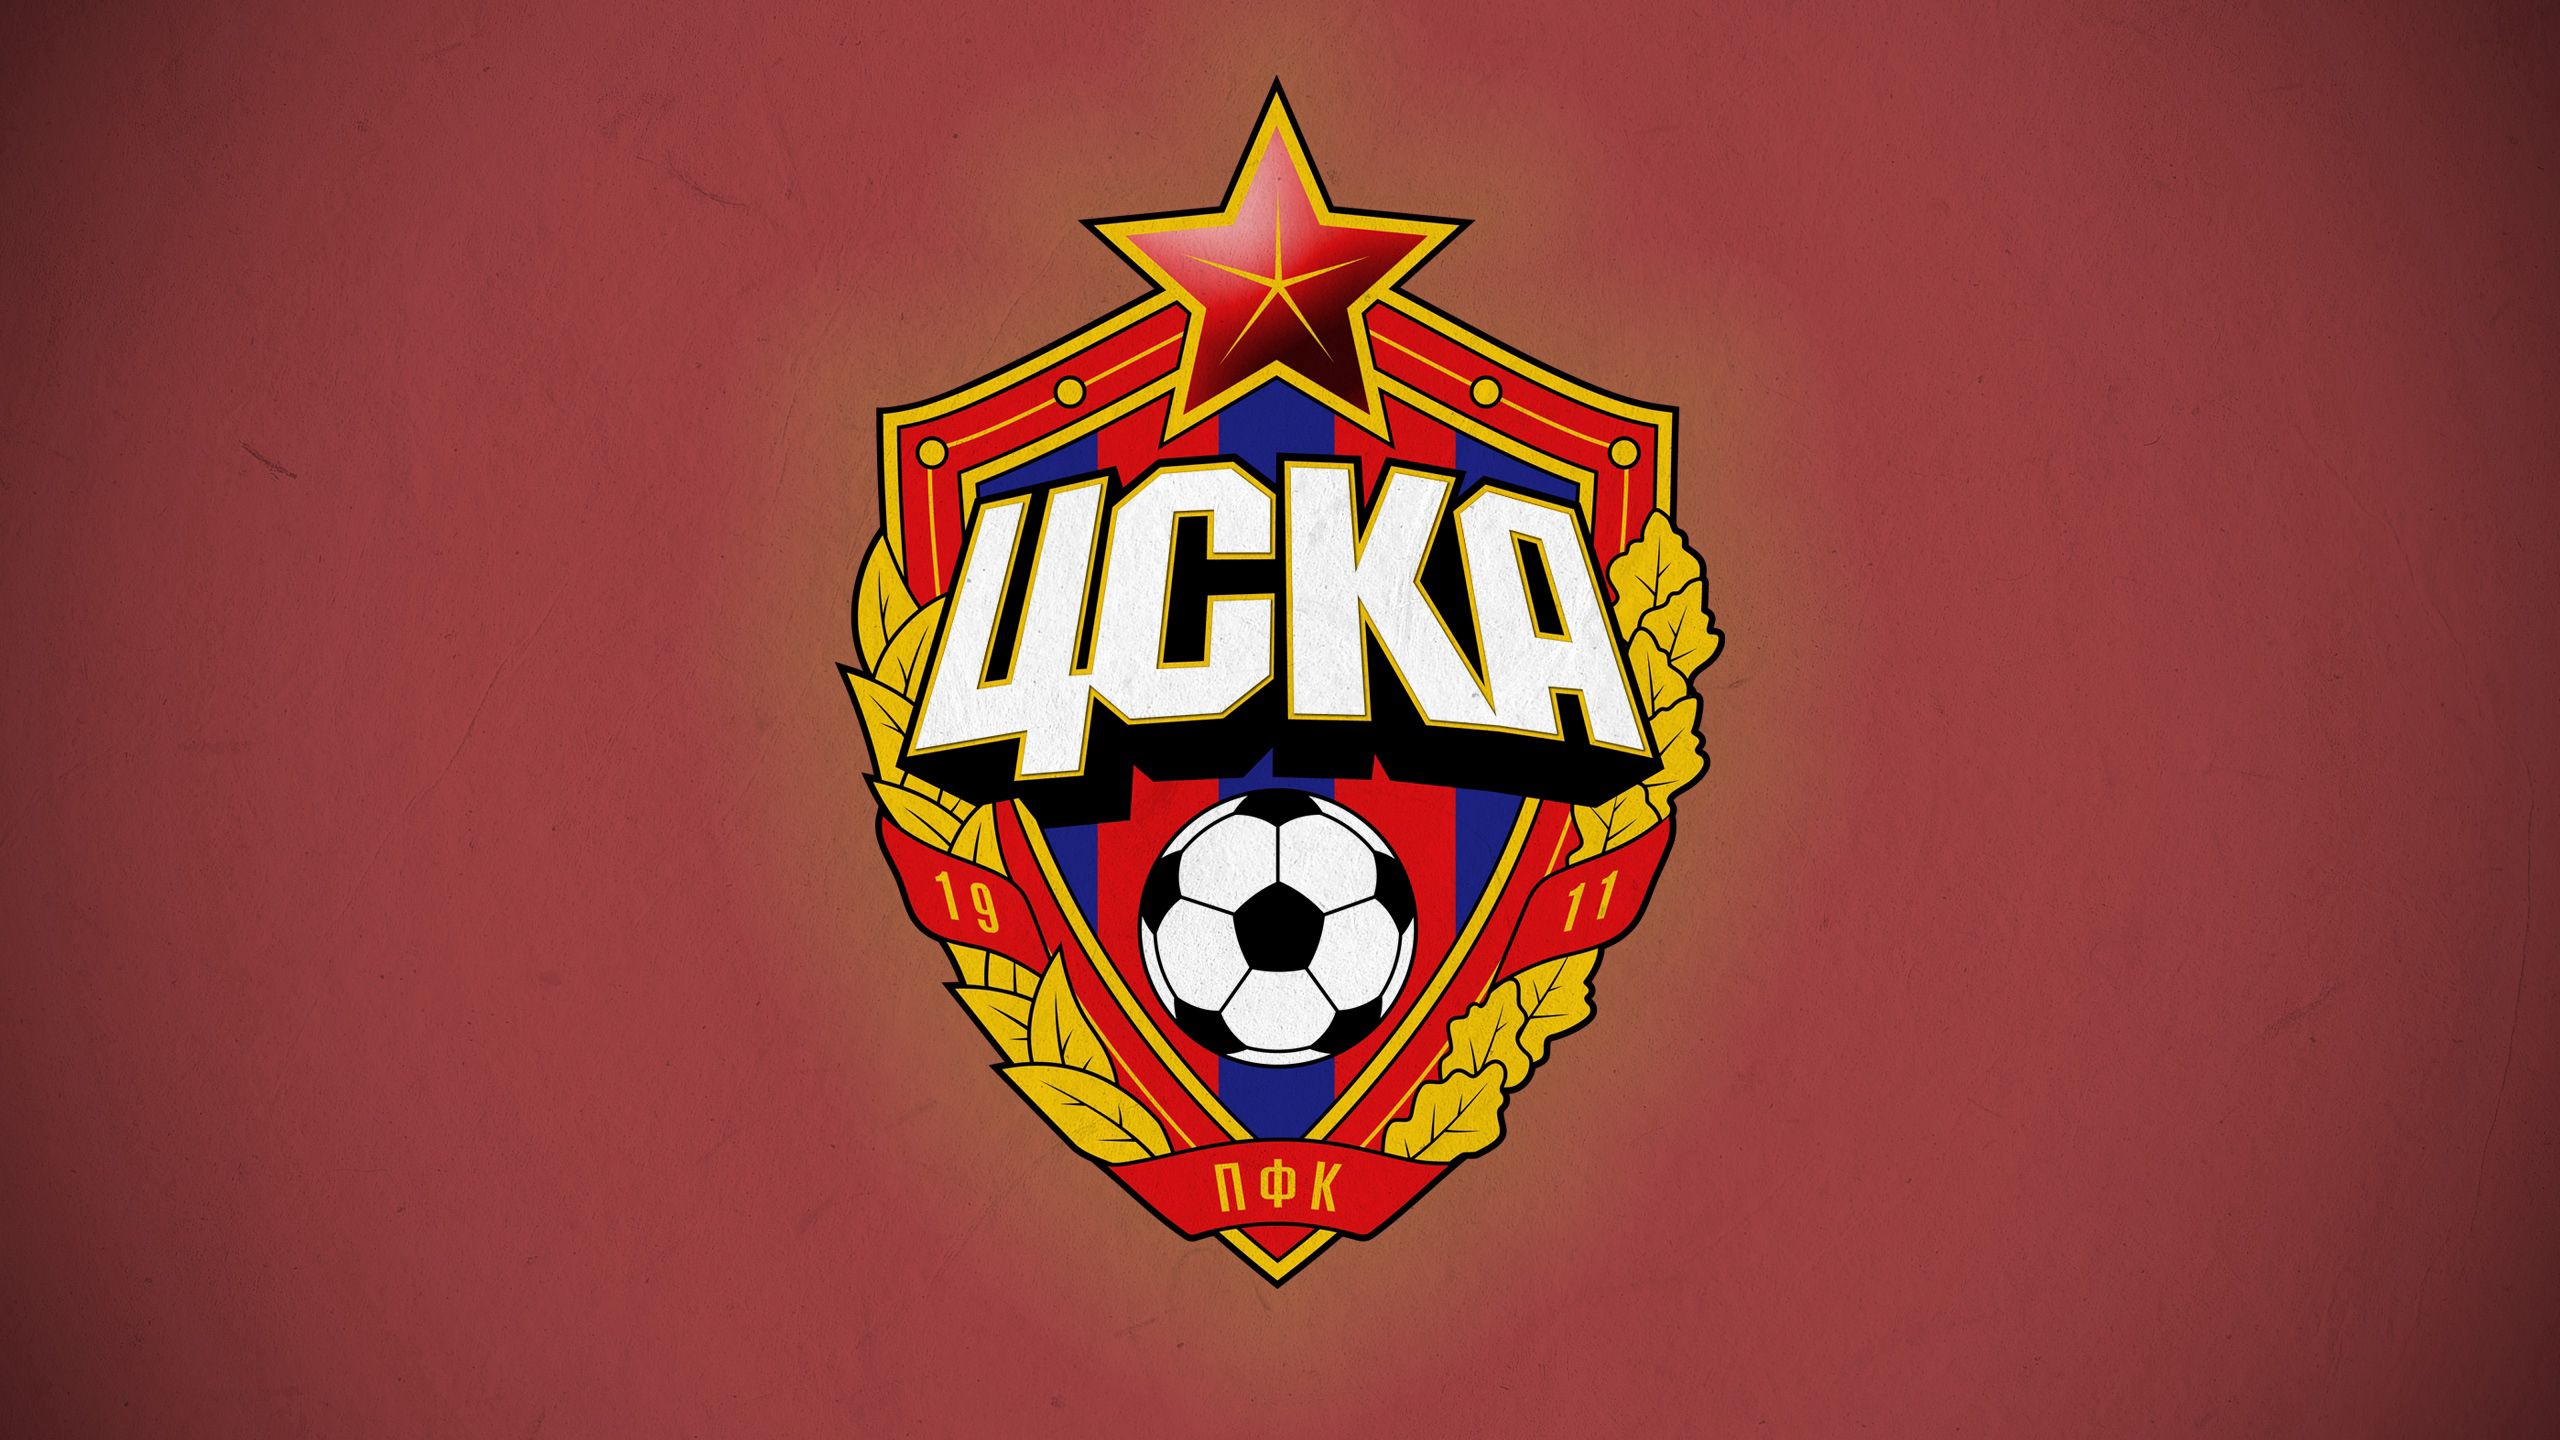 63245 download wallpaper Sports, Cska, Emblem, Ball, Football screensavers and pictures for free